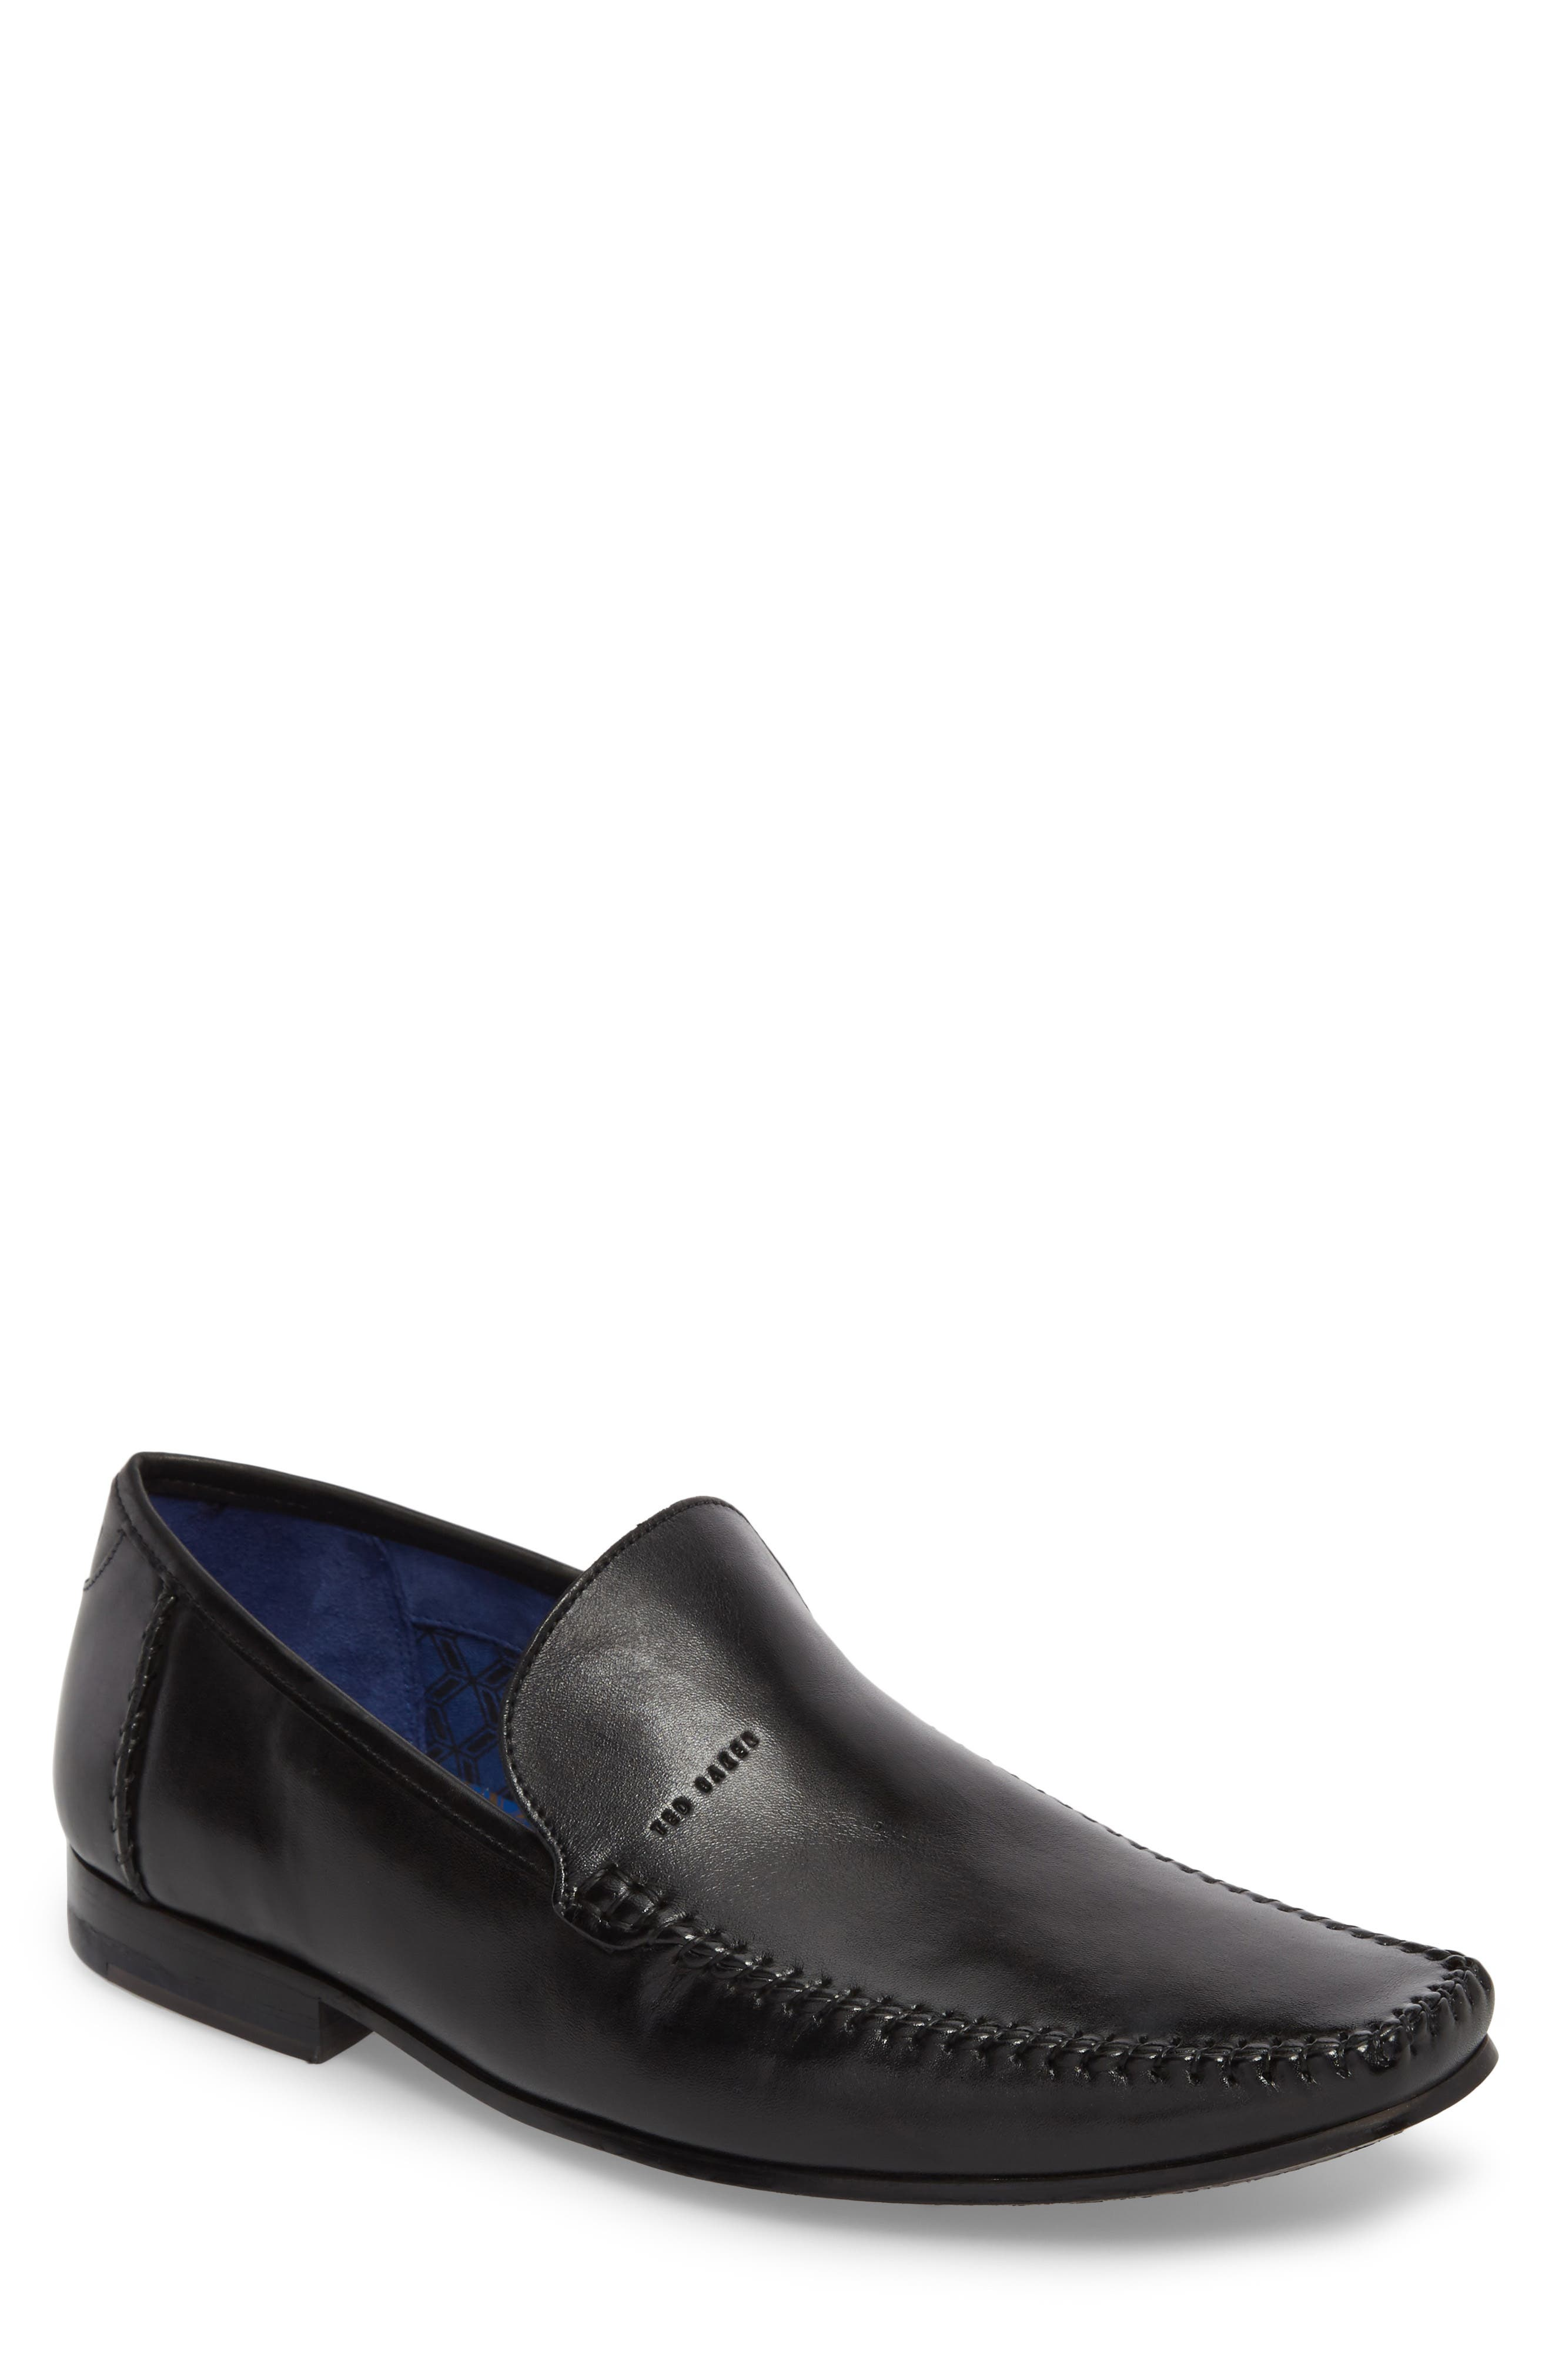 Bly 9 Venetian Loafer,                         Main,                         color, BLACK LEATHER